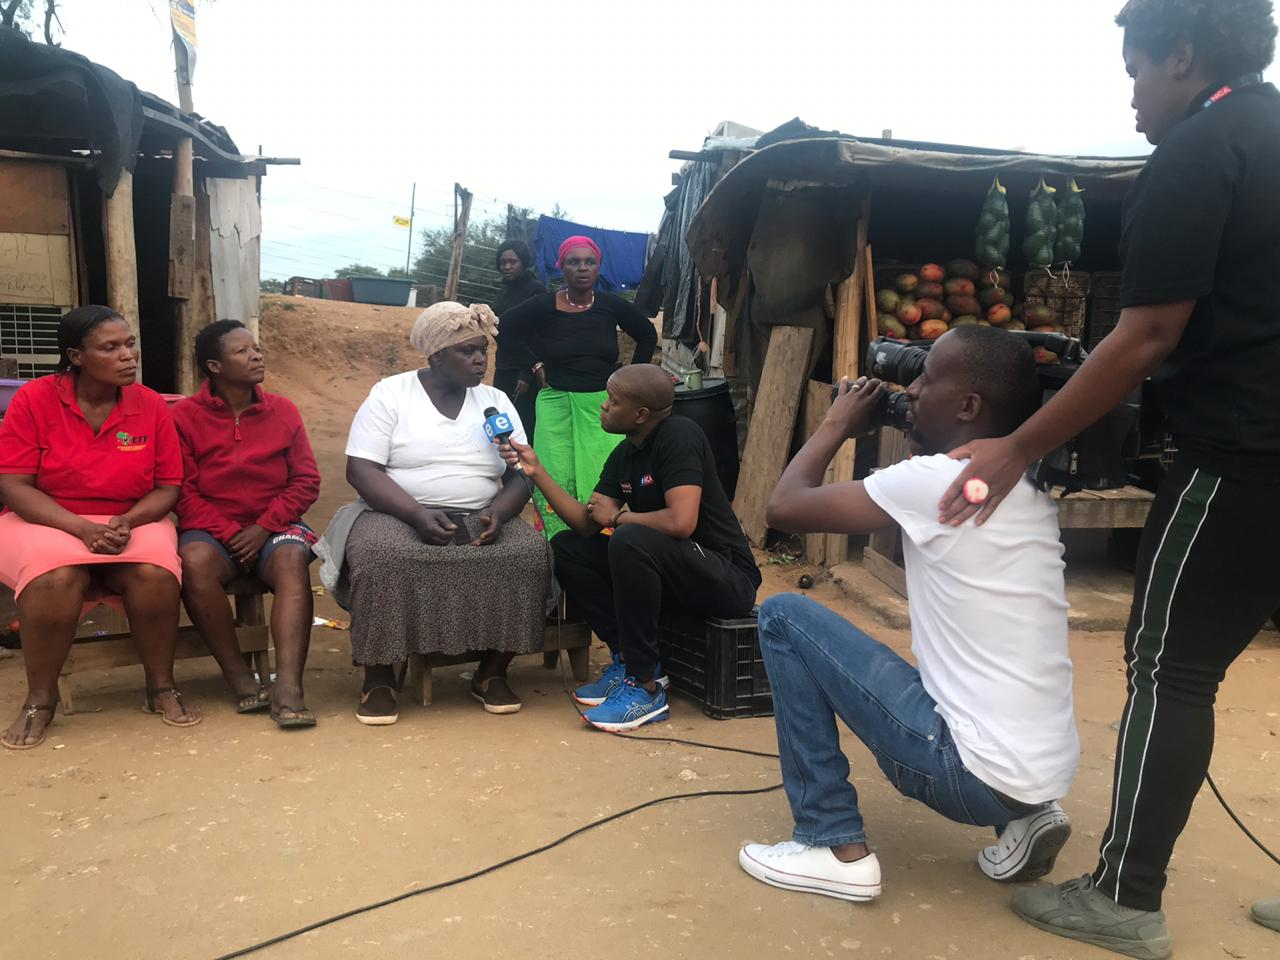 10 April 2019 - The team interviewing residents in Giyani.